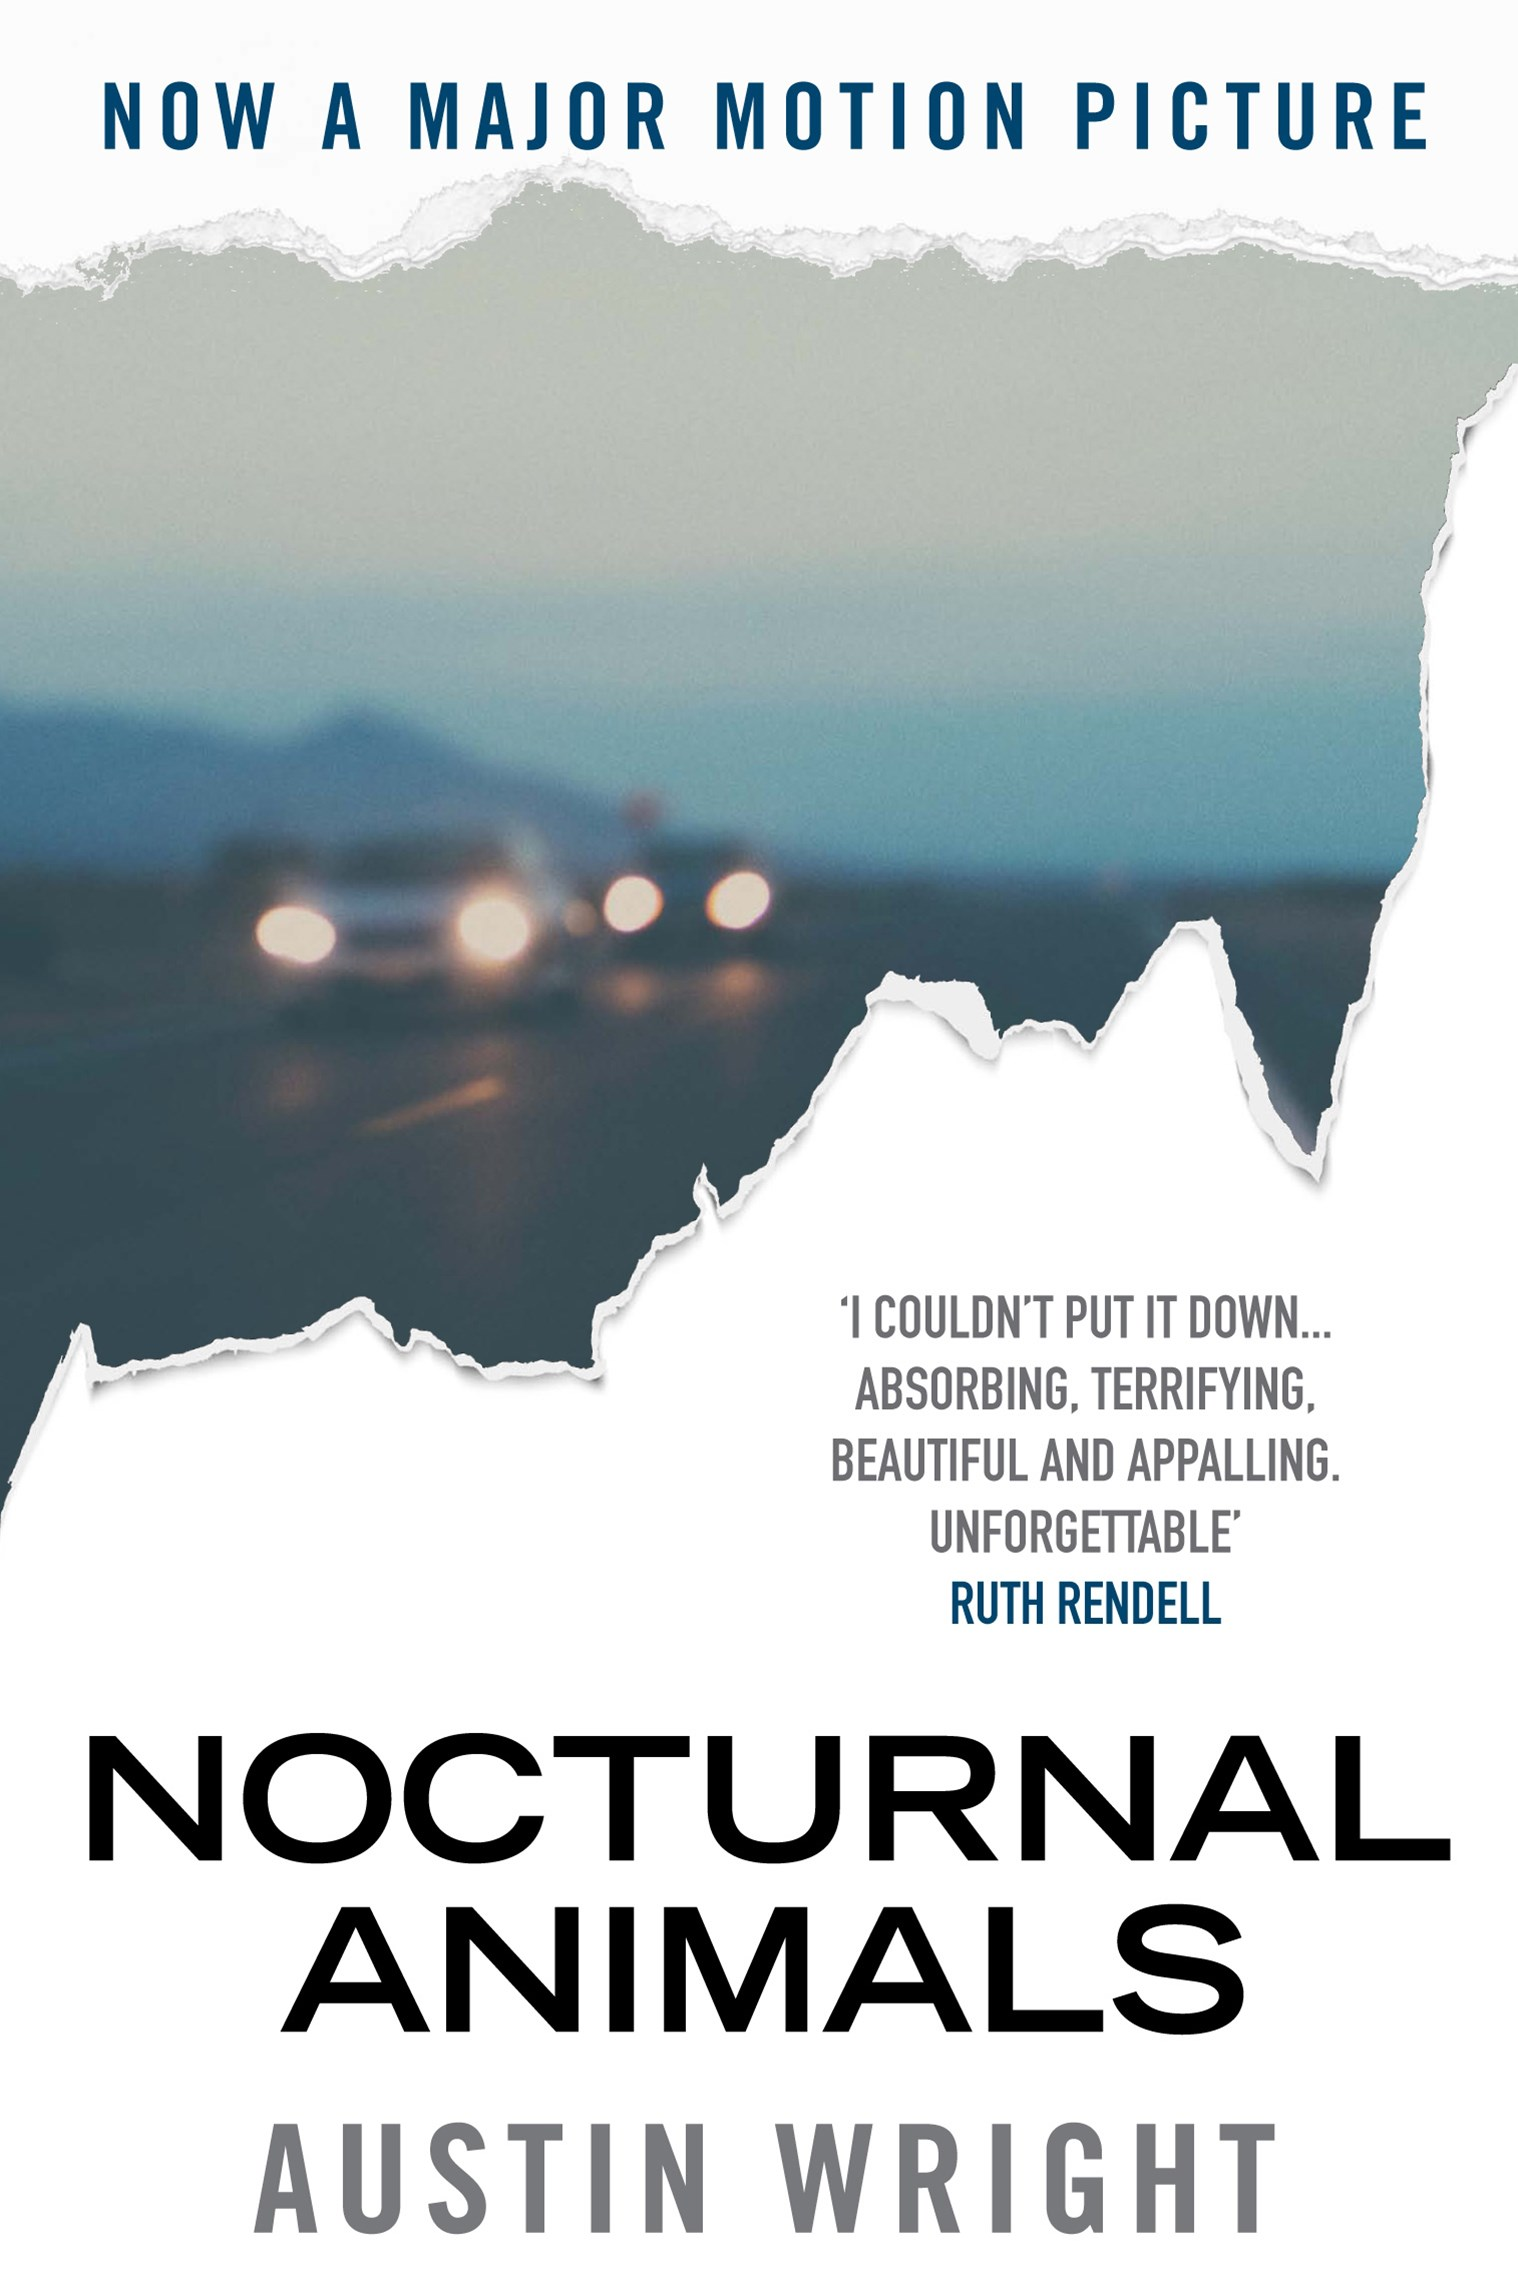 Nocturnal Animals (film tie-in)